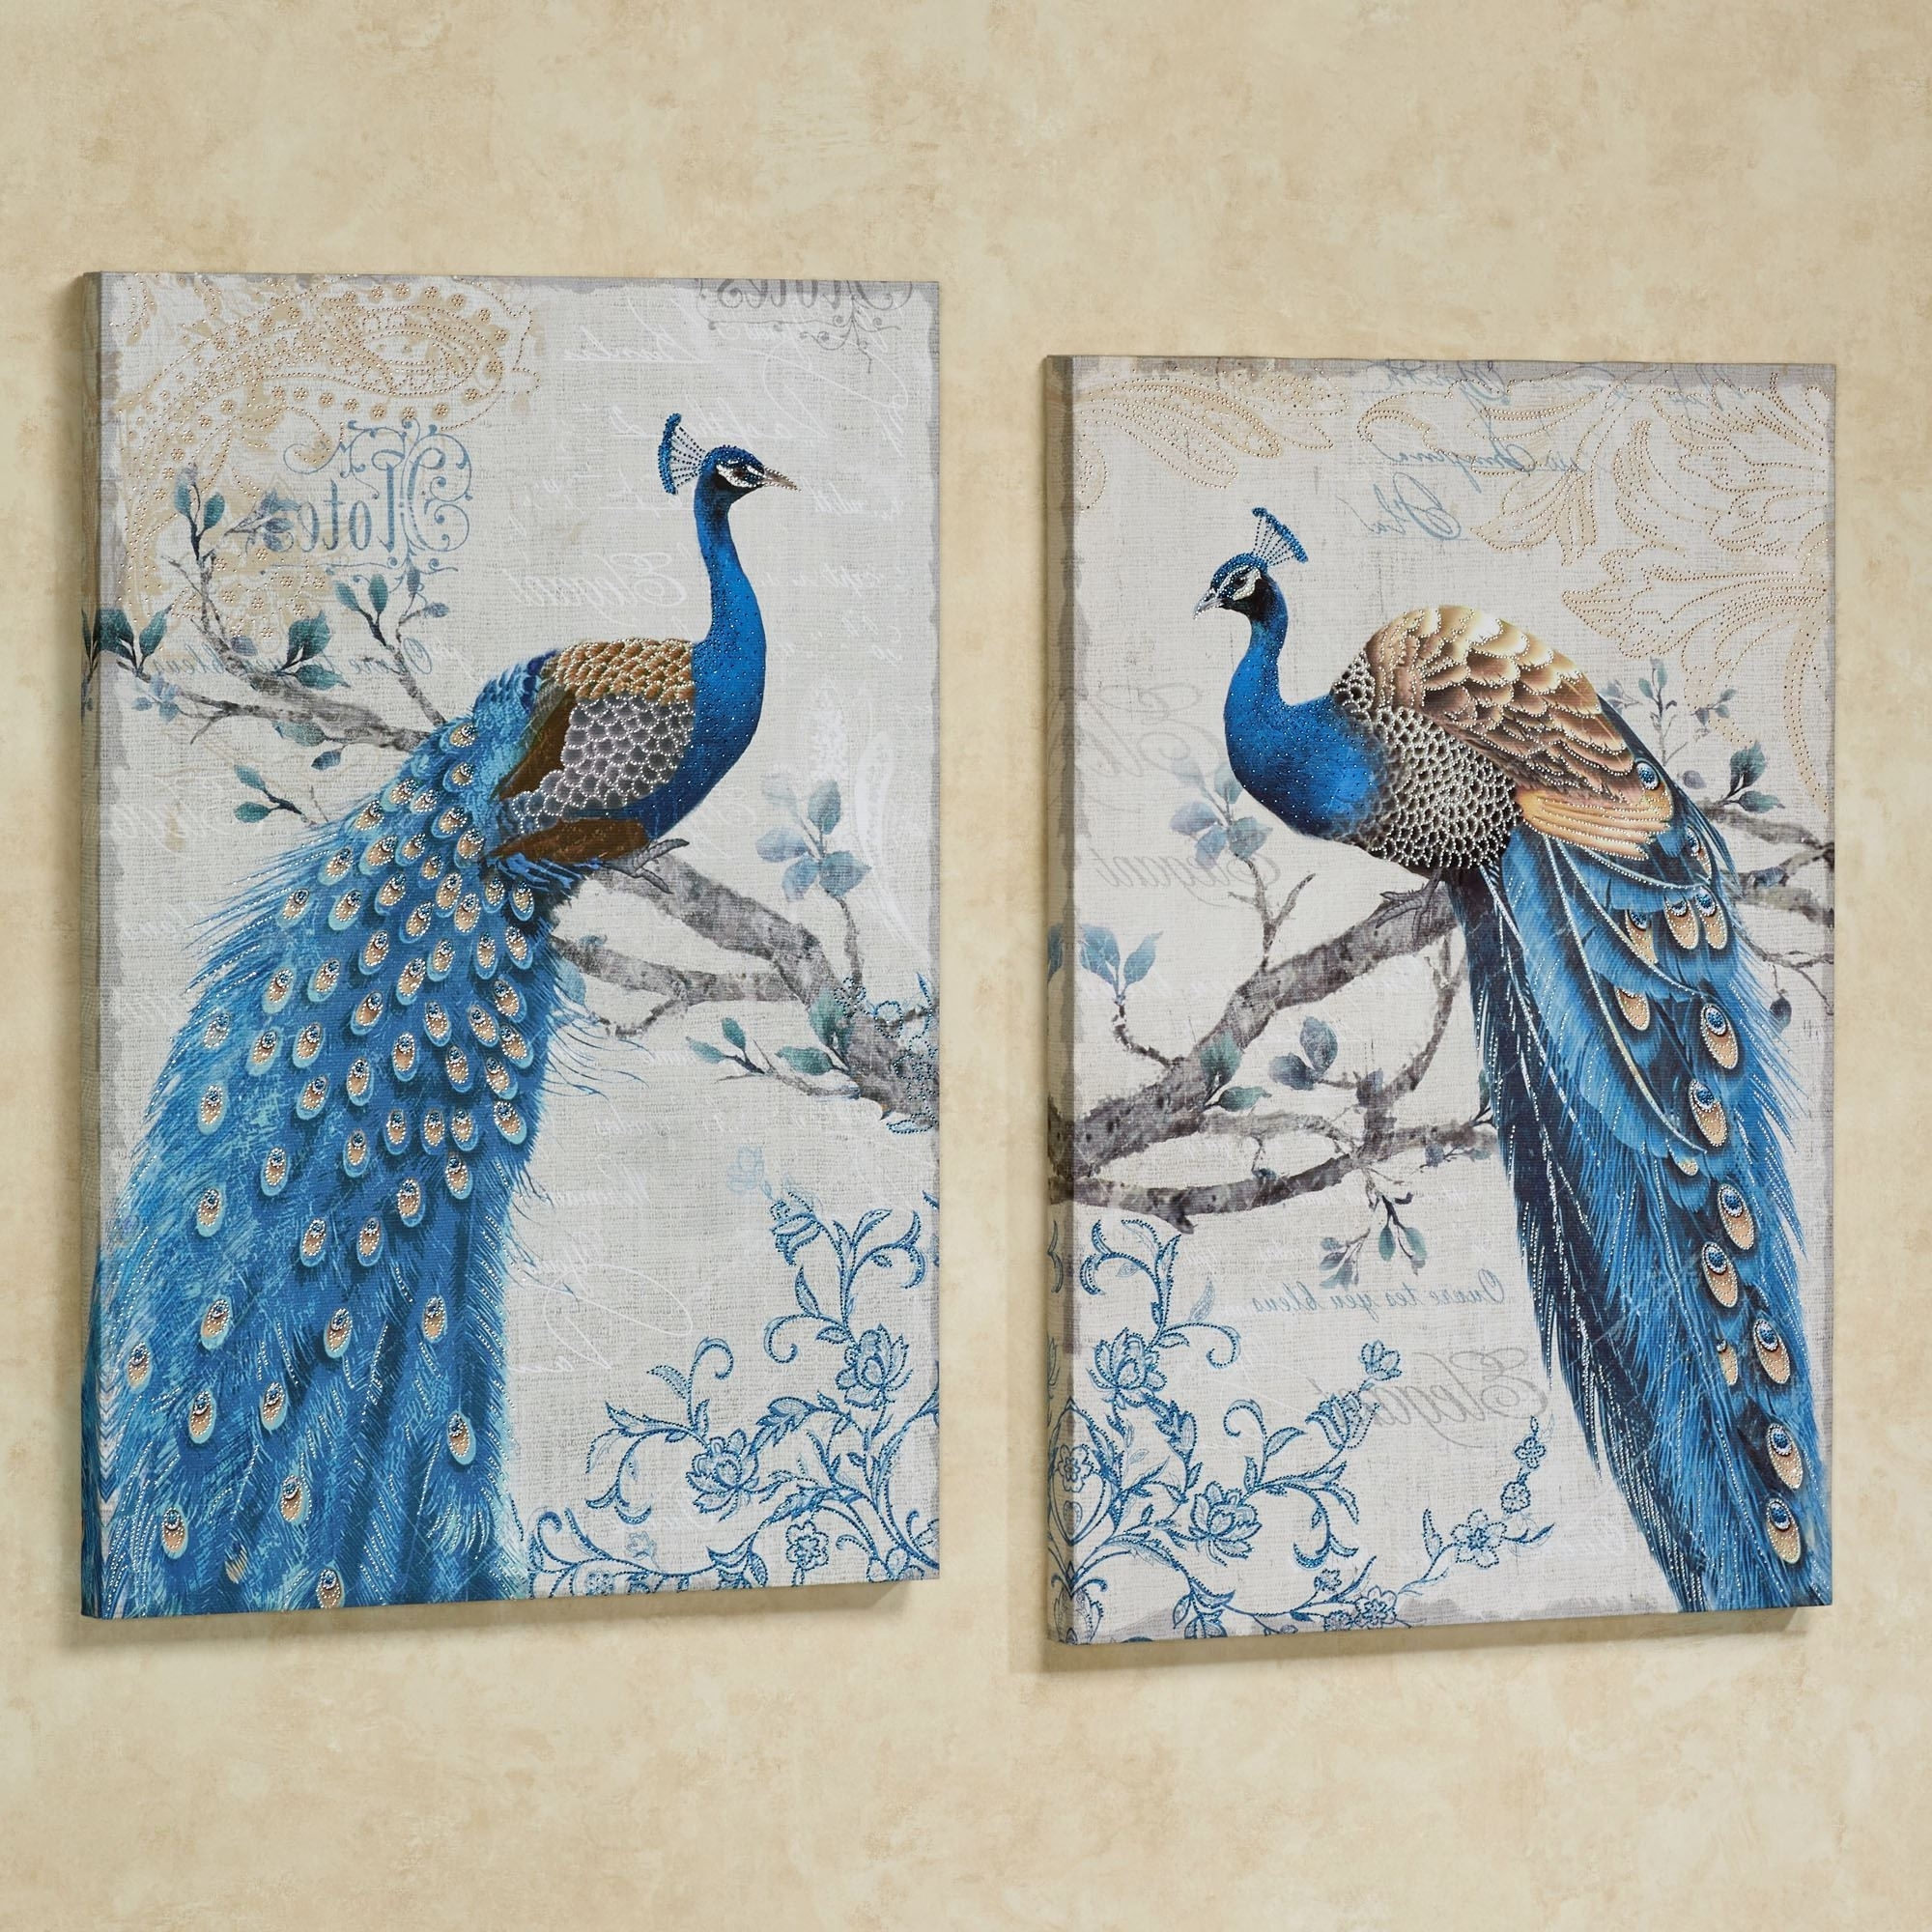 Preferred Magnificent Peacock Giclee Canvas Wall Art Set For Cheap Wall Art Canvas Sets (View 14 of 15)